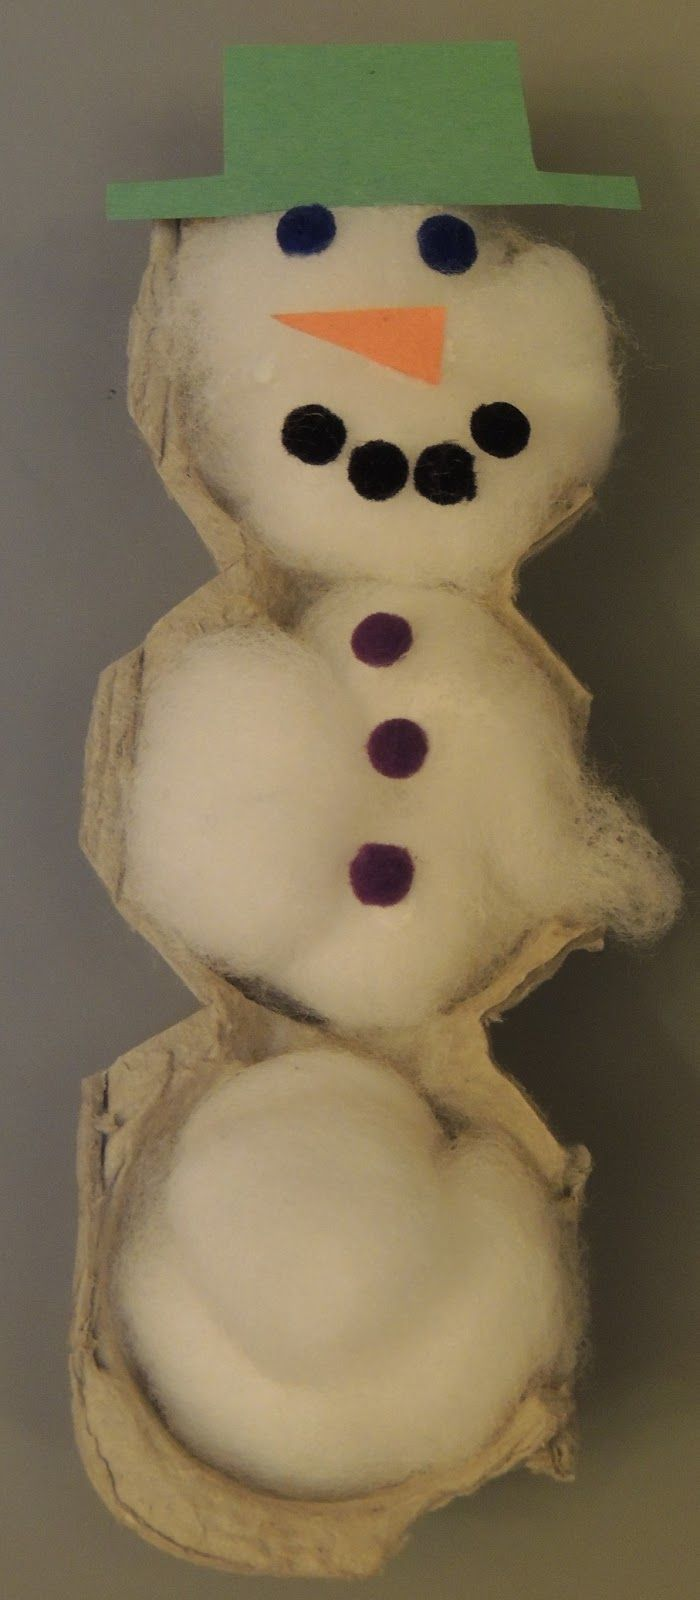 Simple snowman craft for toddlers and preschoolers.